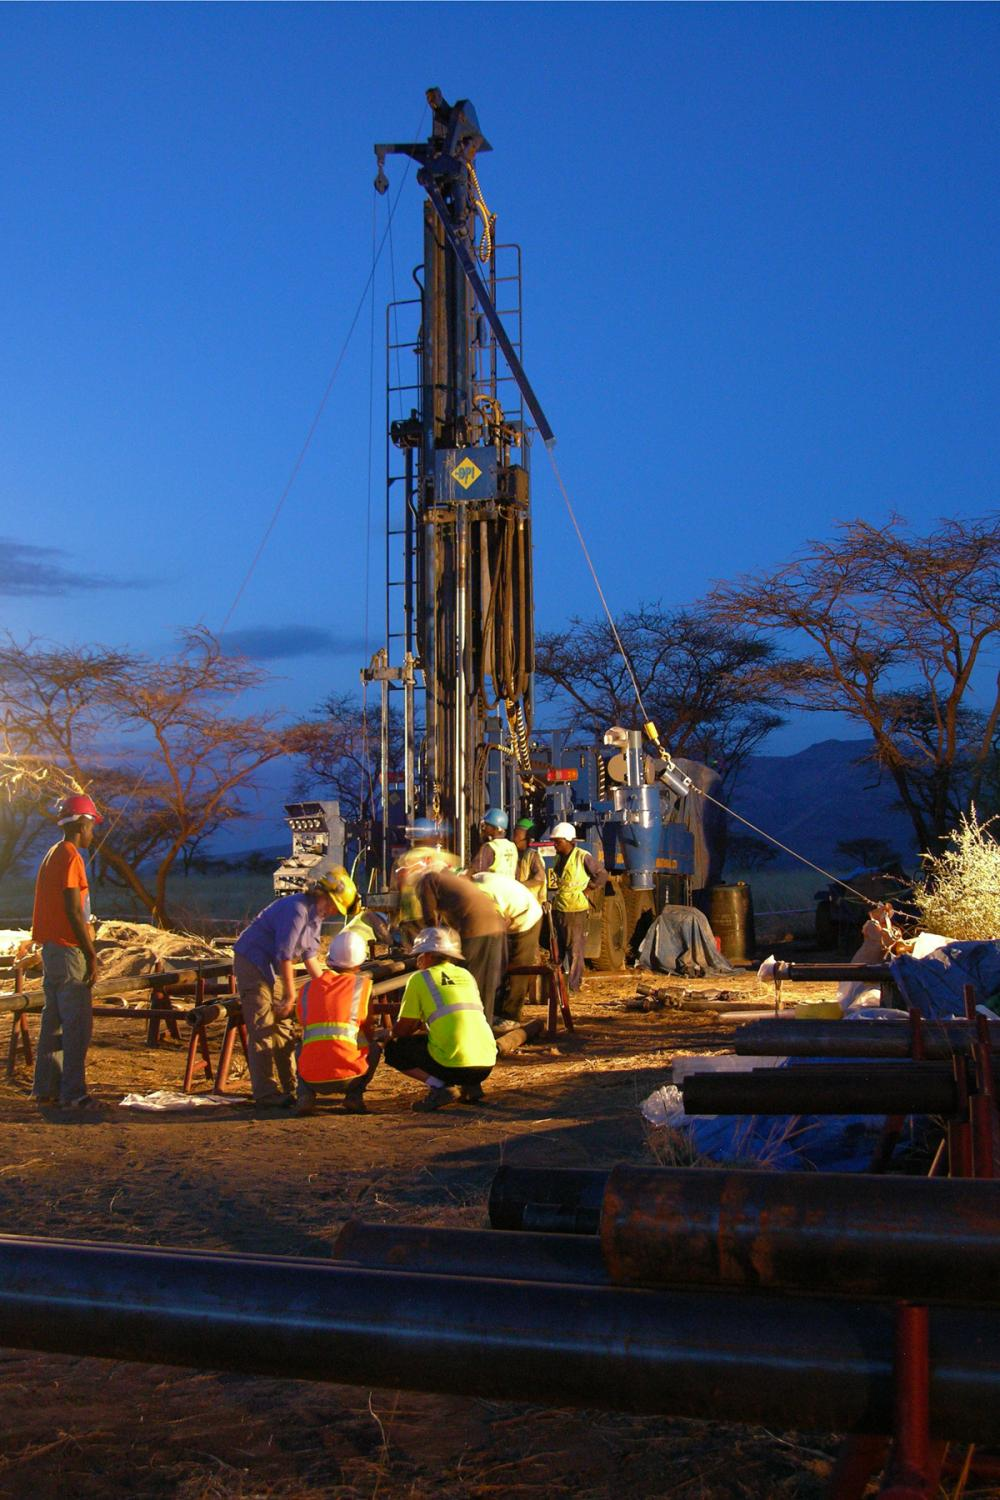 Potts's American and Kenyan team of drillers and core-recovery experts undertook day / night-time drilling. This approach to doing human origins research had not previously been tried. Photo credit: Smithsonian Institution.